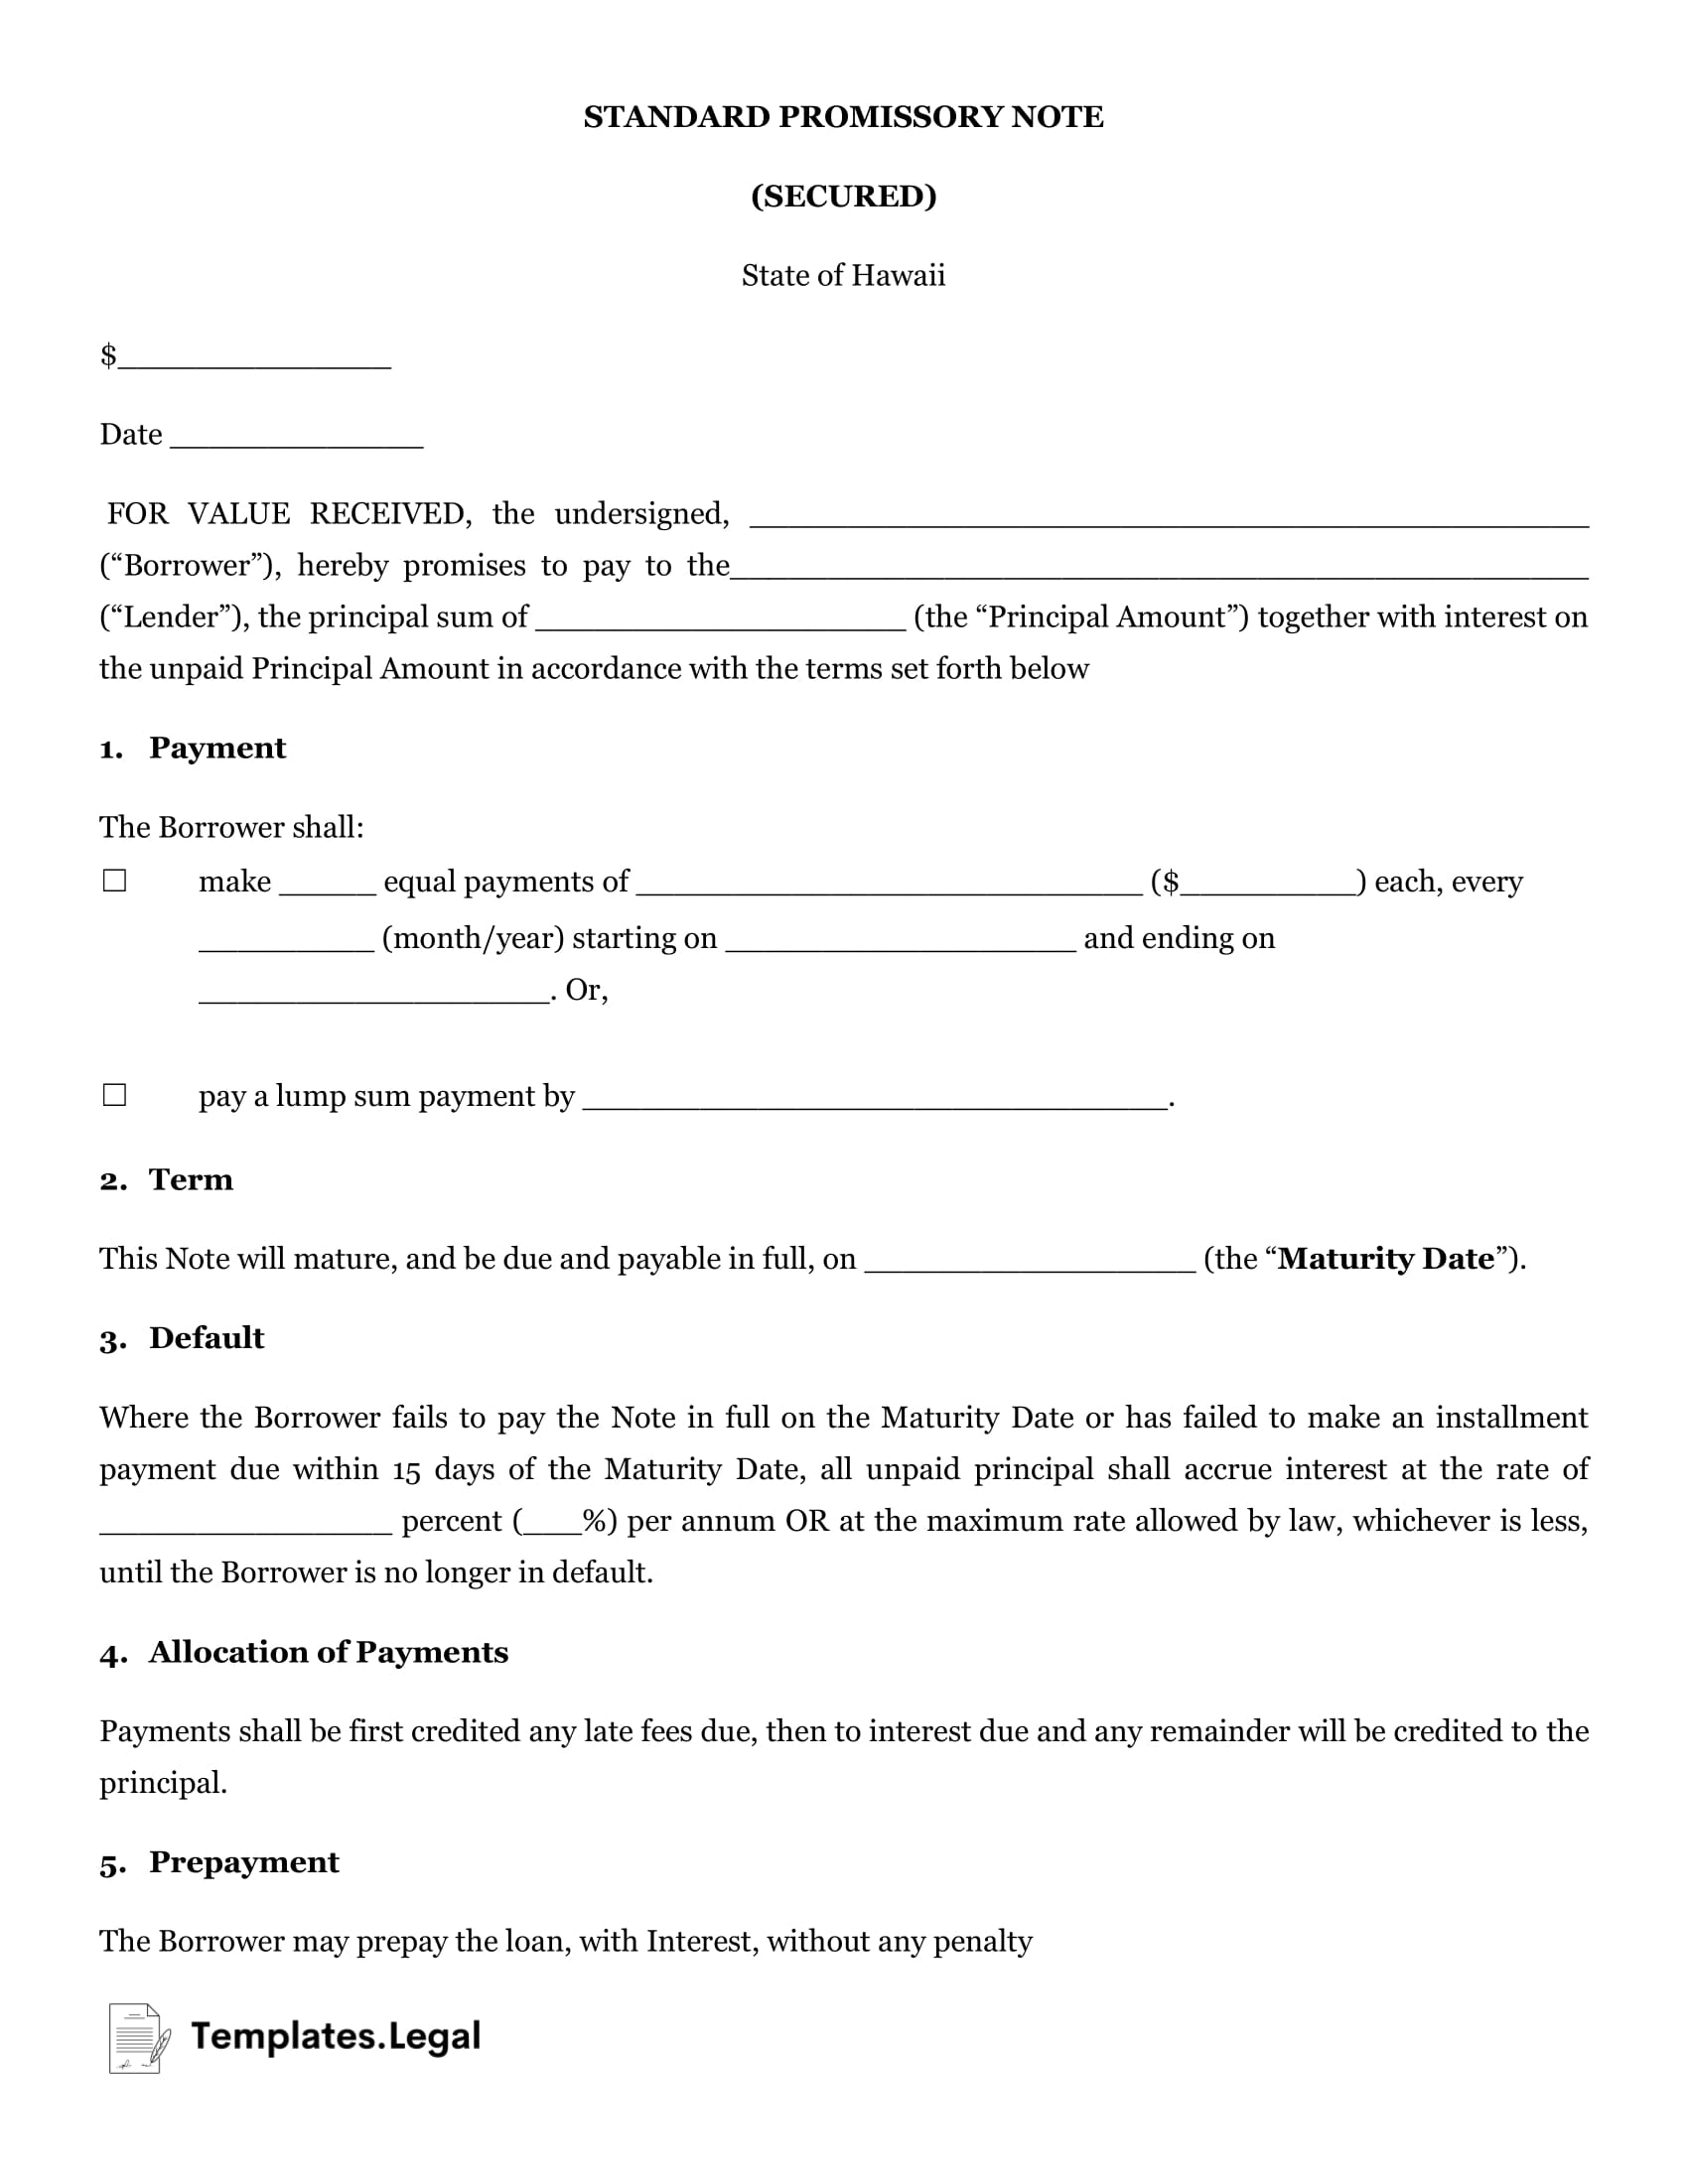 Hawaii Secured Promissory Note - Templates.Legal